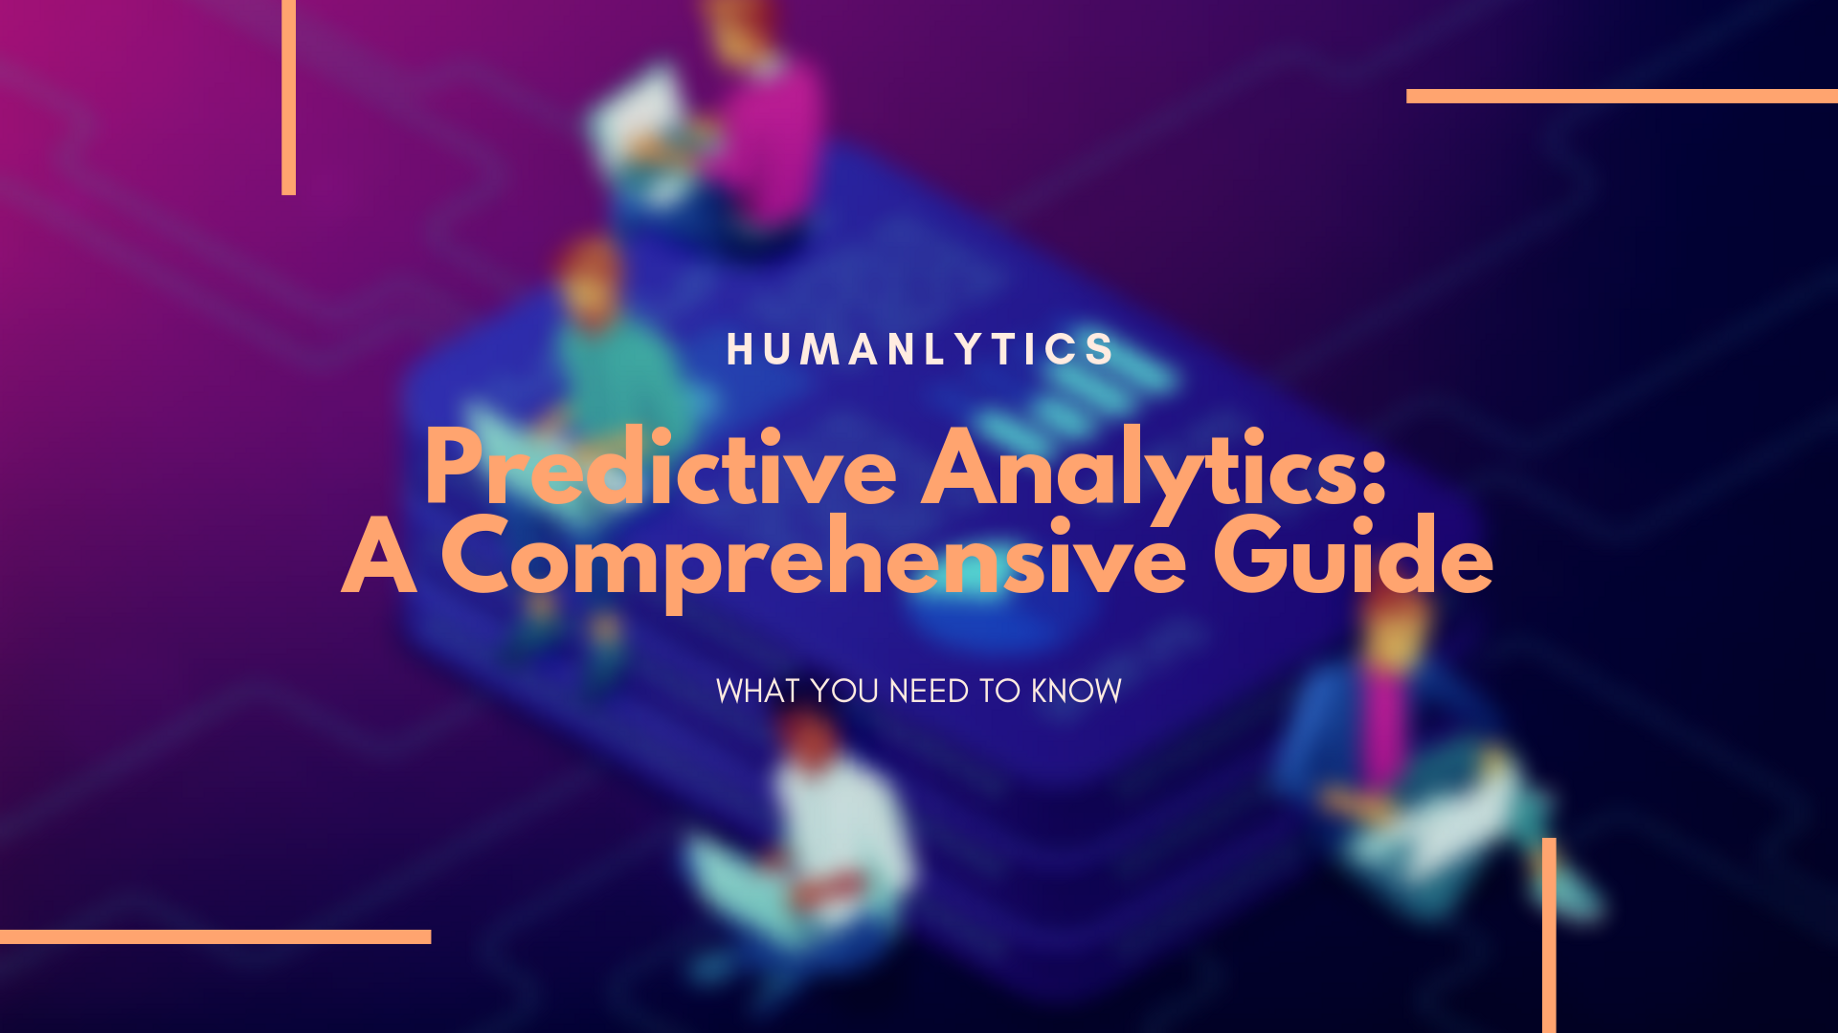 A Comprehensive Guide To Predictive Analytics  - Analytics for